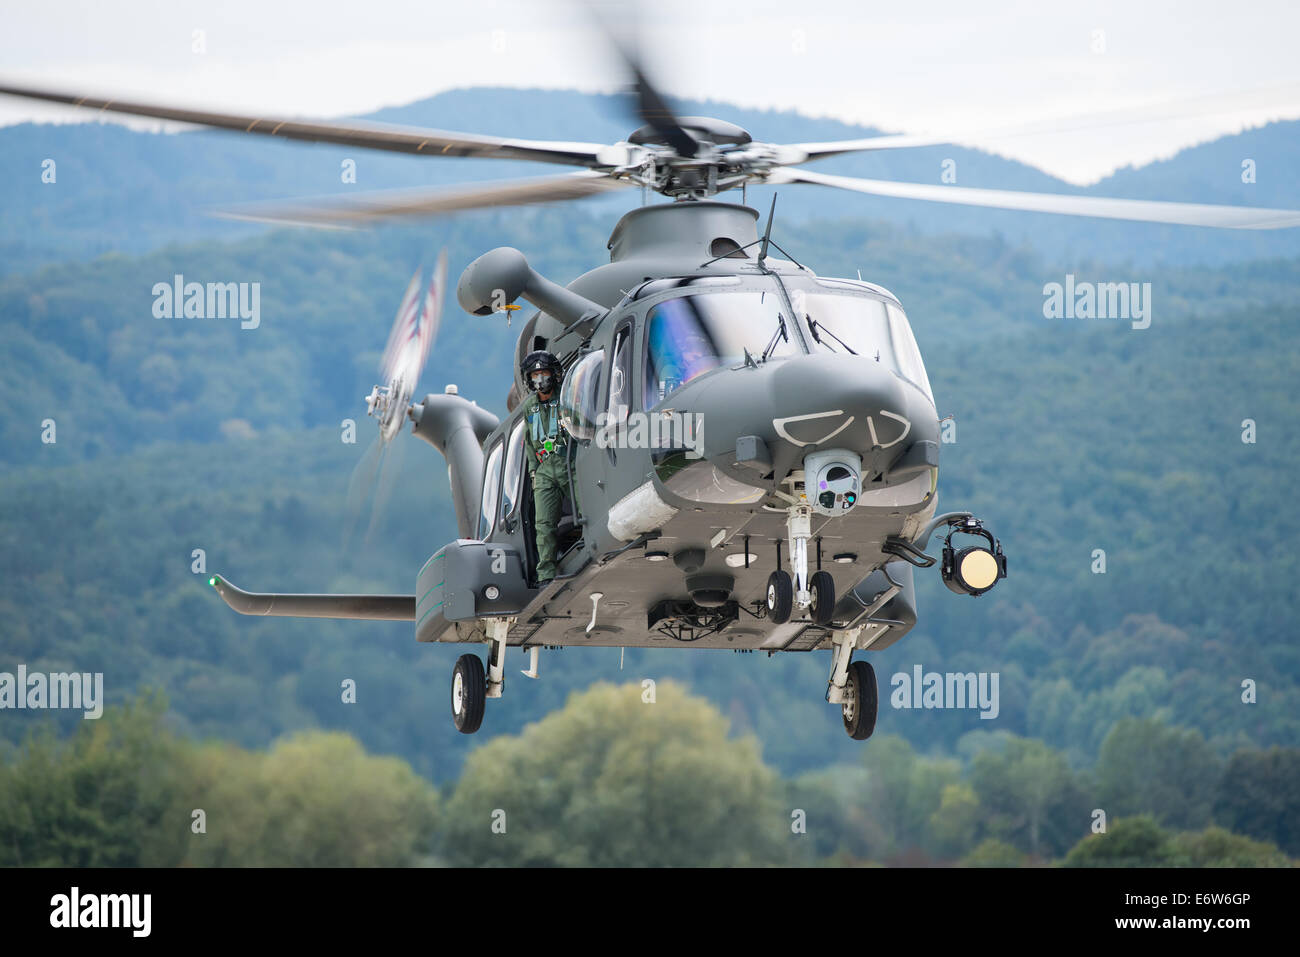 SLIAC, SLOVAKIA - AUGUST 30: Dynamic display of A-109 Agusta of Belgian Air Force during SIAF airshow in Sliac, - Stock Image